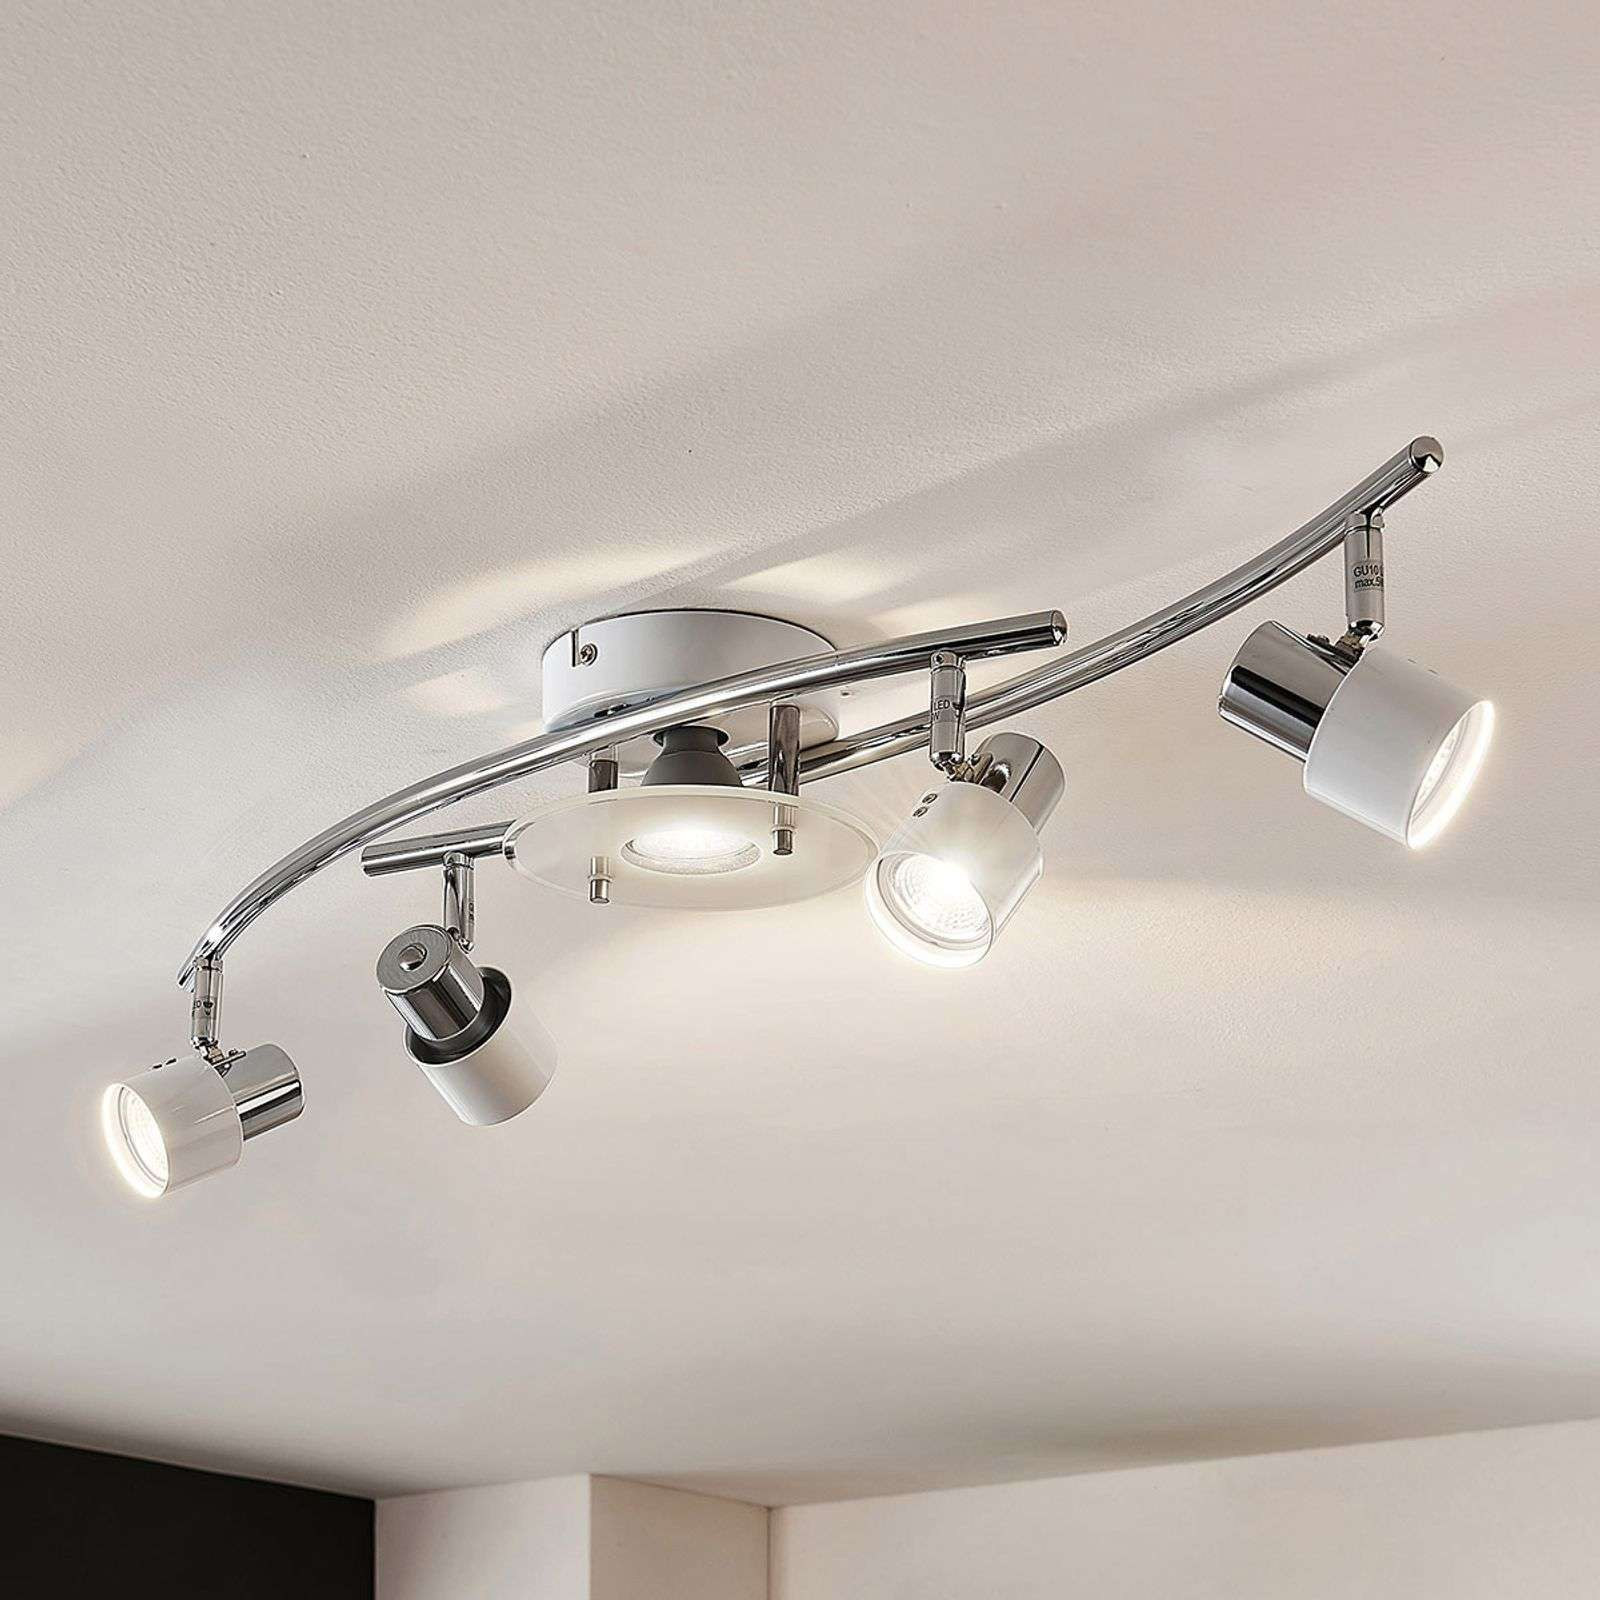 Cleon - plafonnier LED blanc, dimmable